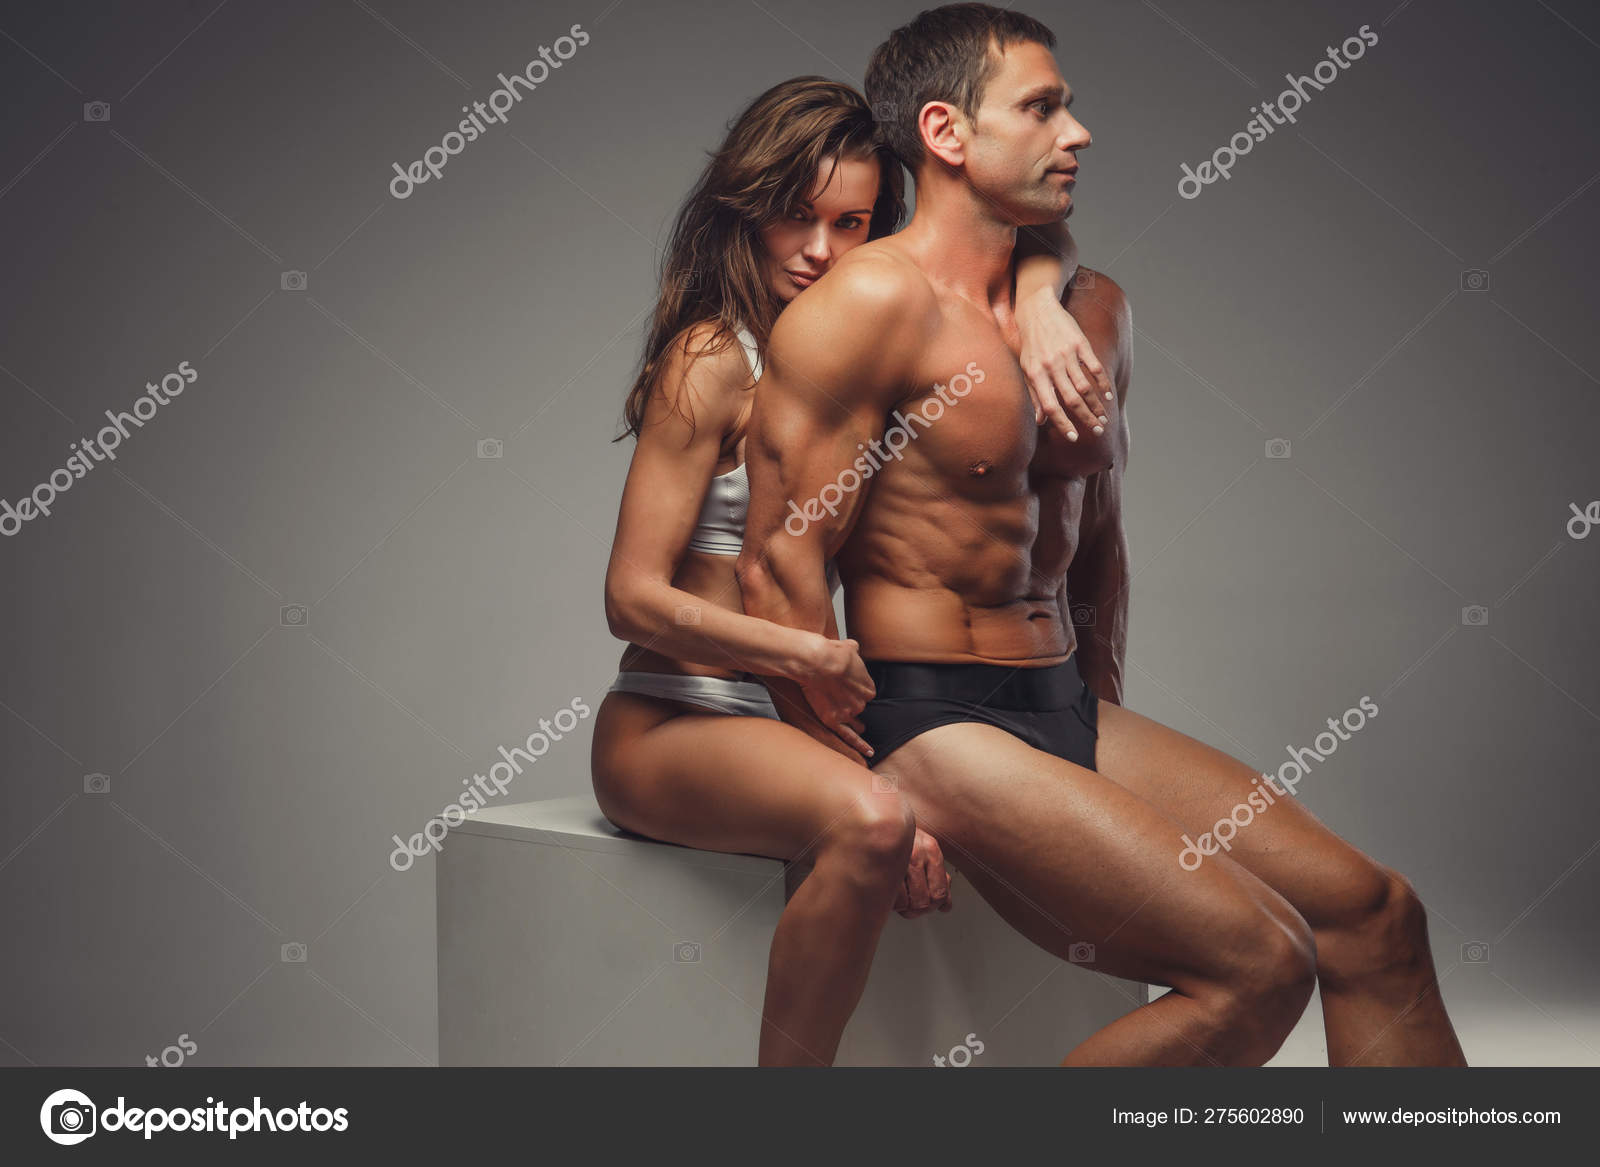 Naked and athletic Naked Athletic Couple Posing In Studio Stock Photo By C Fxquadro 275602890